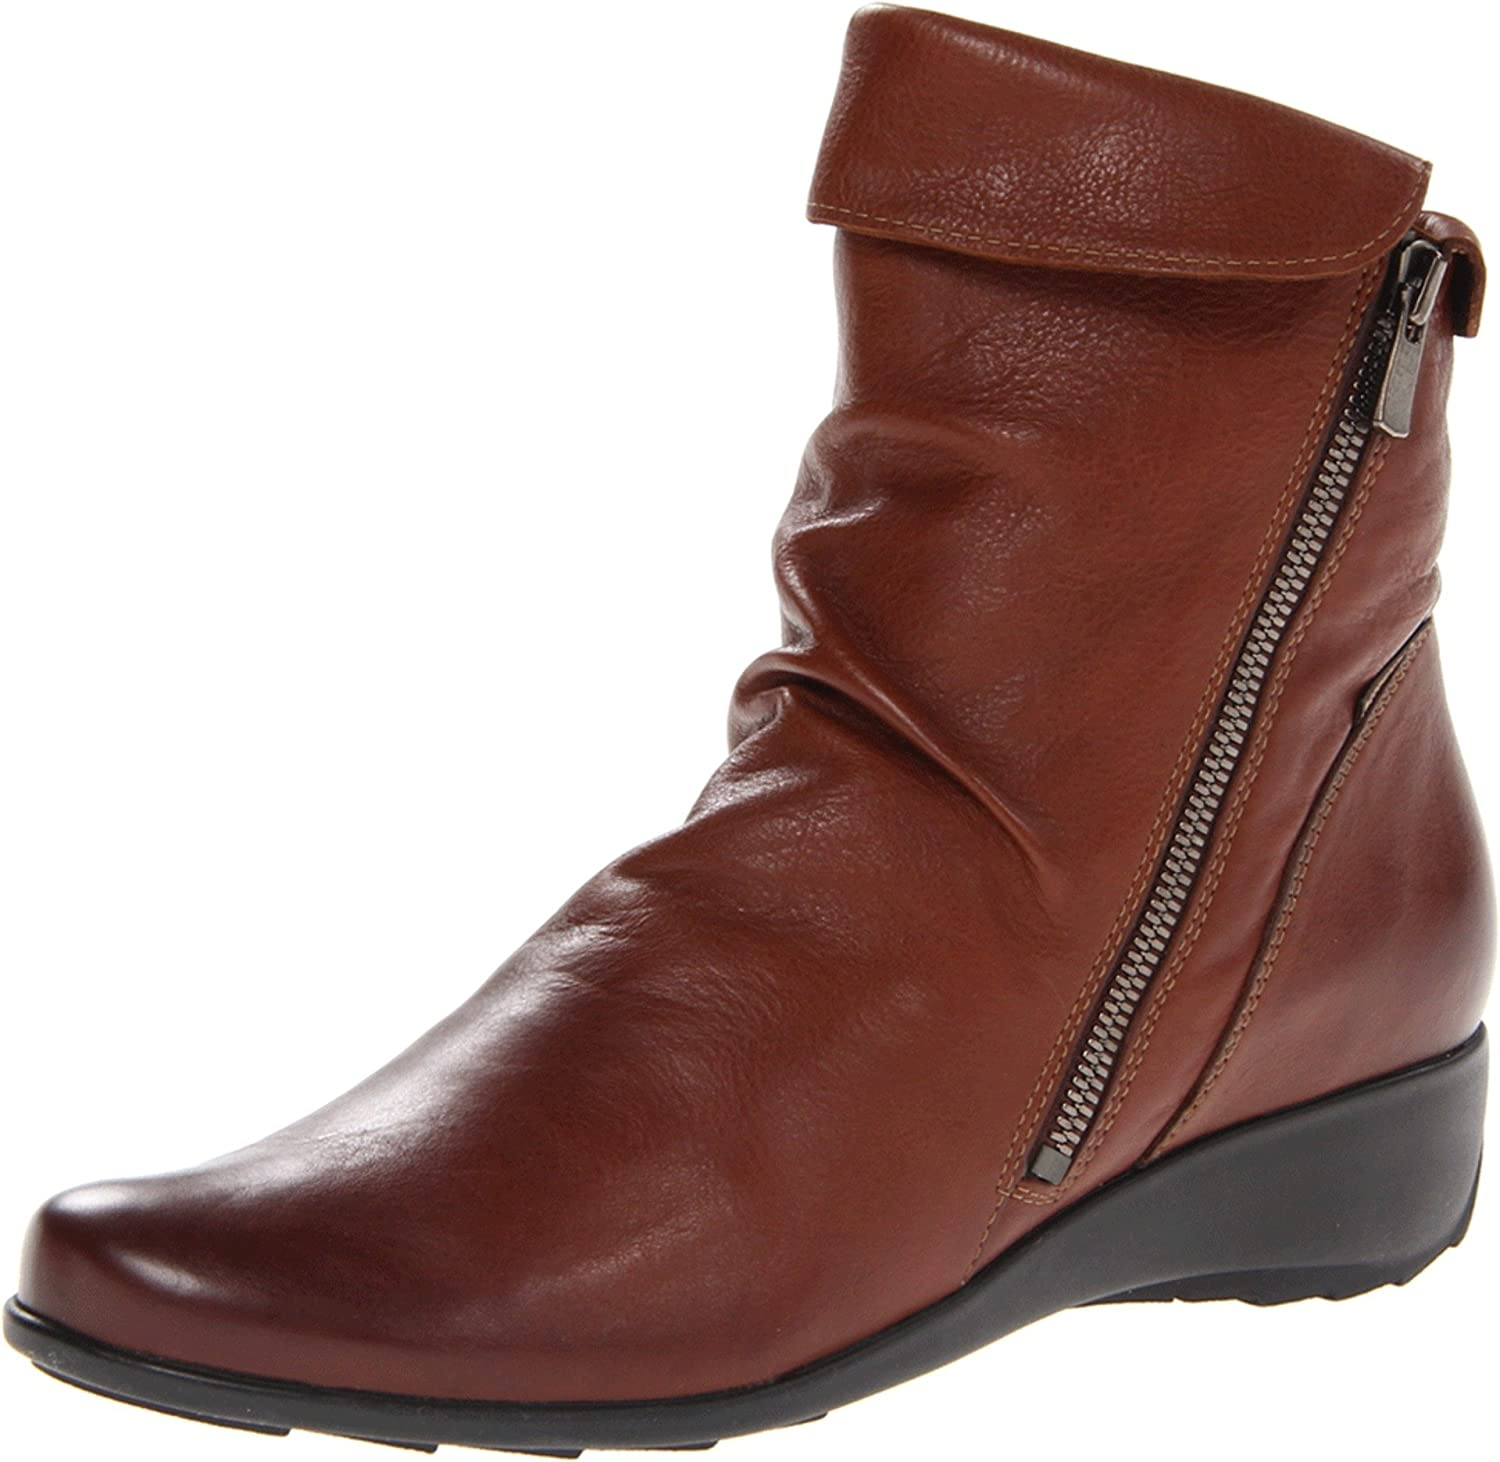 Mephisto Women's Seddy Boot B00BPYY8YO 8.5 B(M) US|Hazelnut Texas